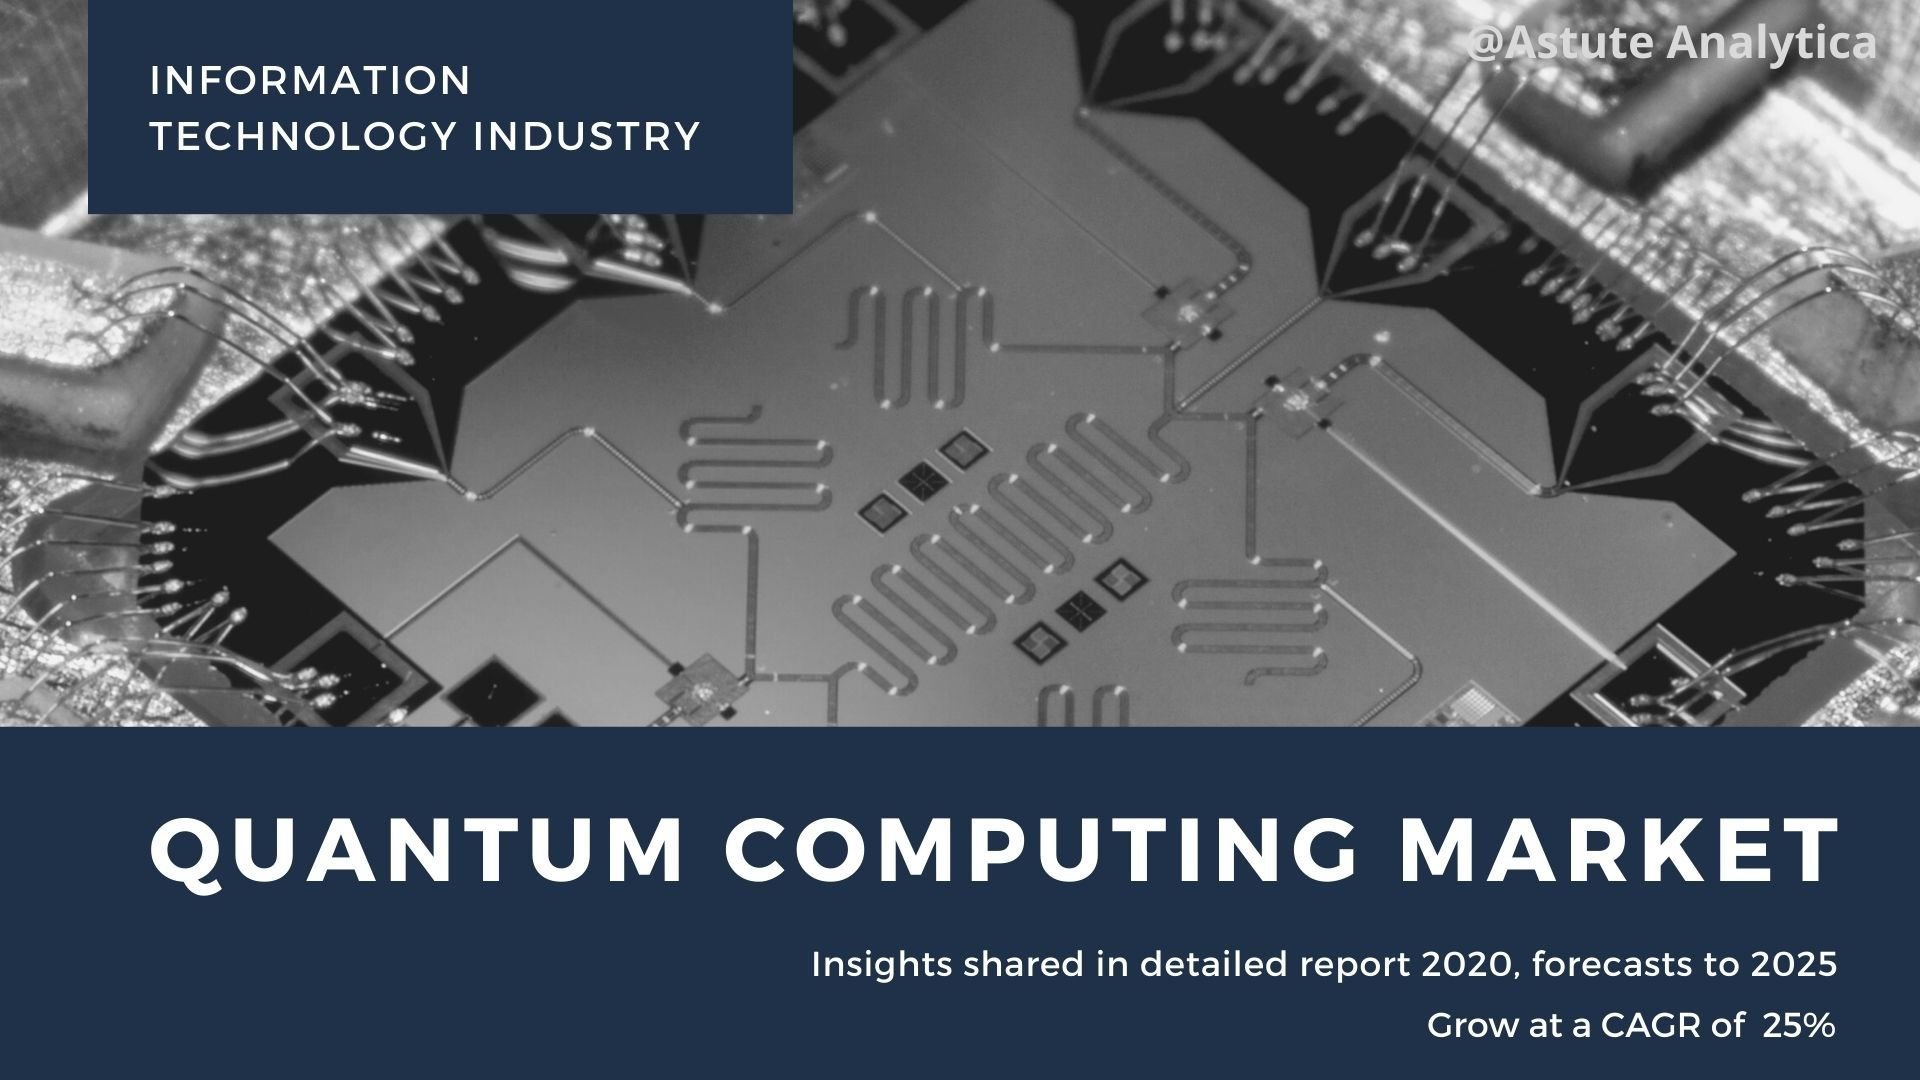 Quantum computing market insights shared in detailed report 2020, forecasts to 2025